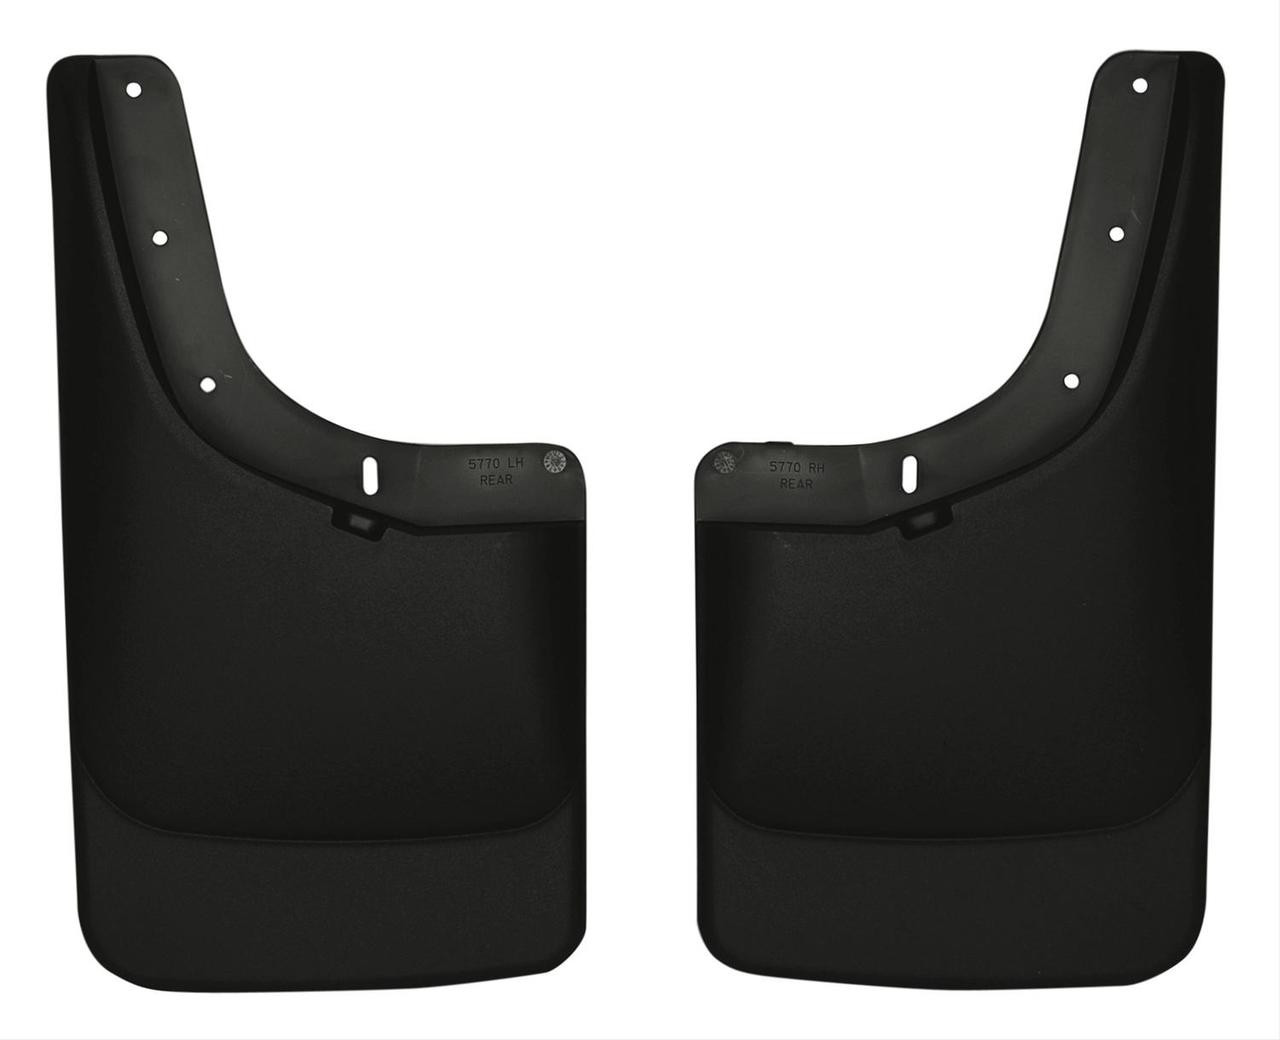 04-12 COLORADO/CANYON W/O FLARES REAR MUD GUARDS